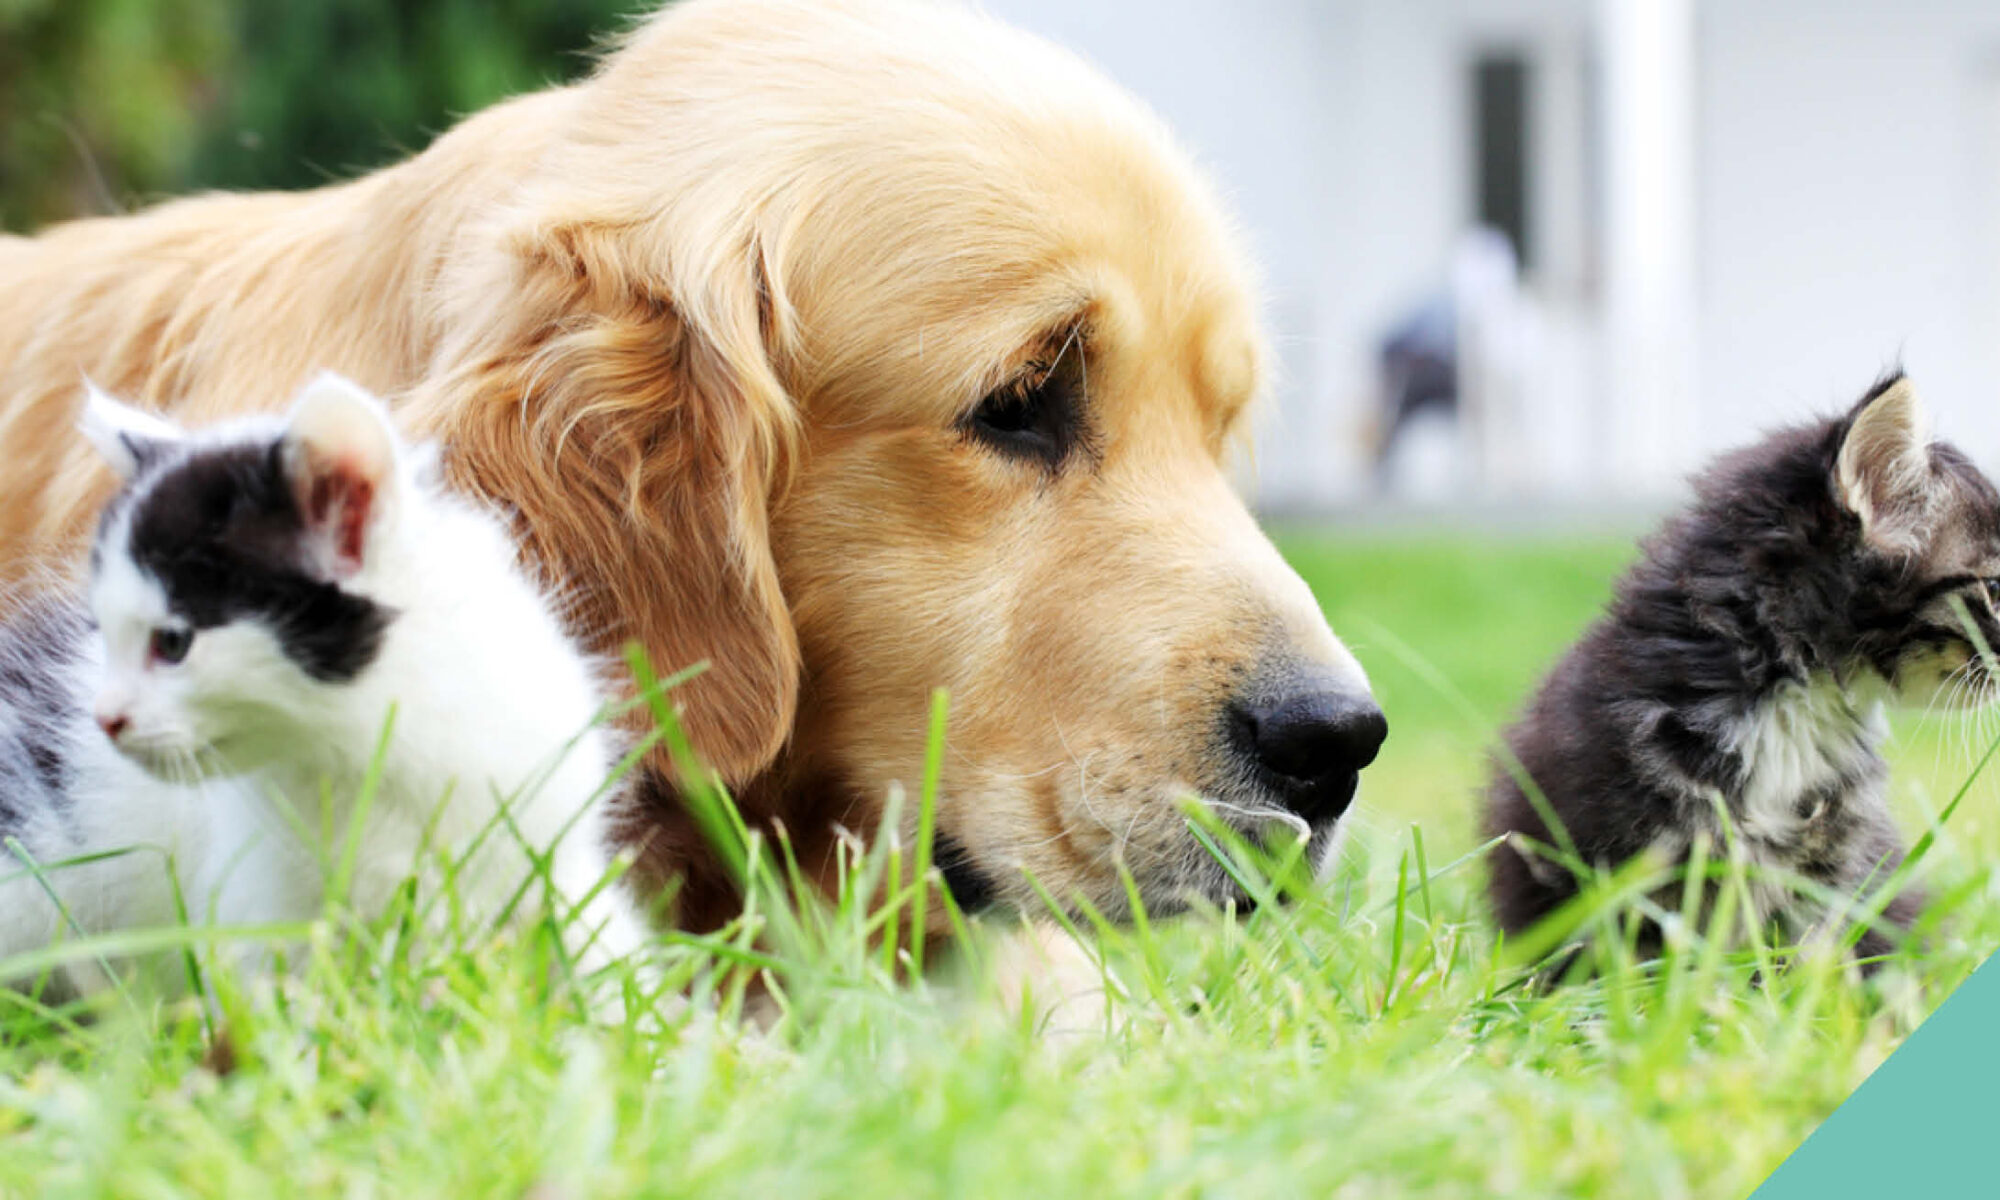 Two kittens and a dog lying in the grass